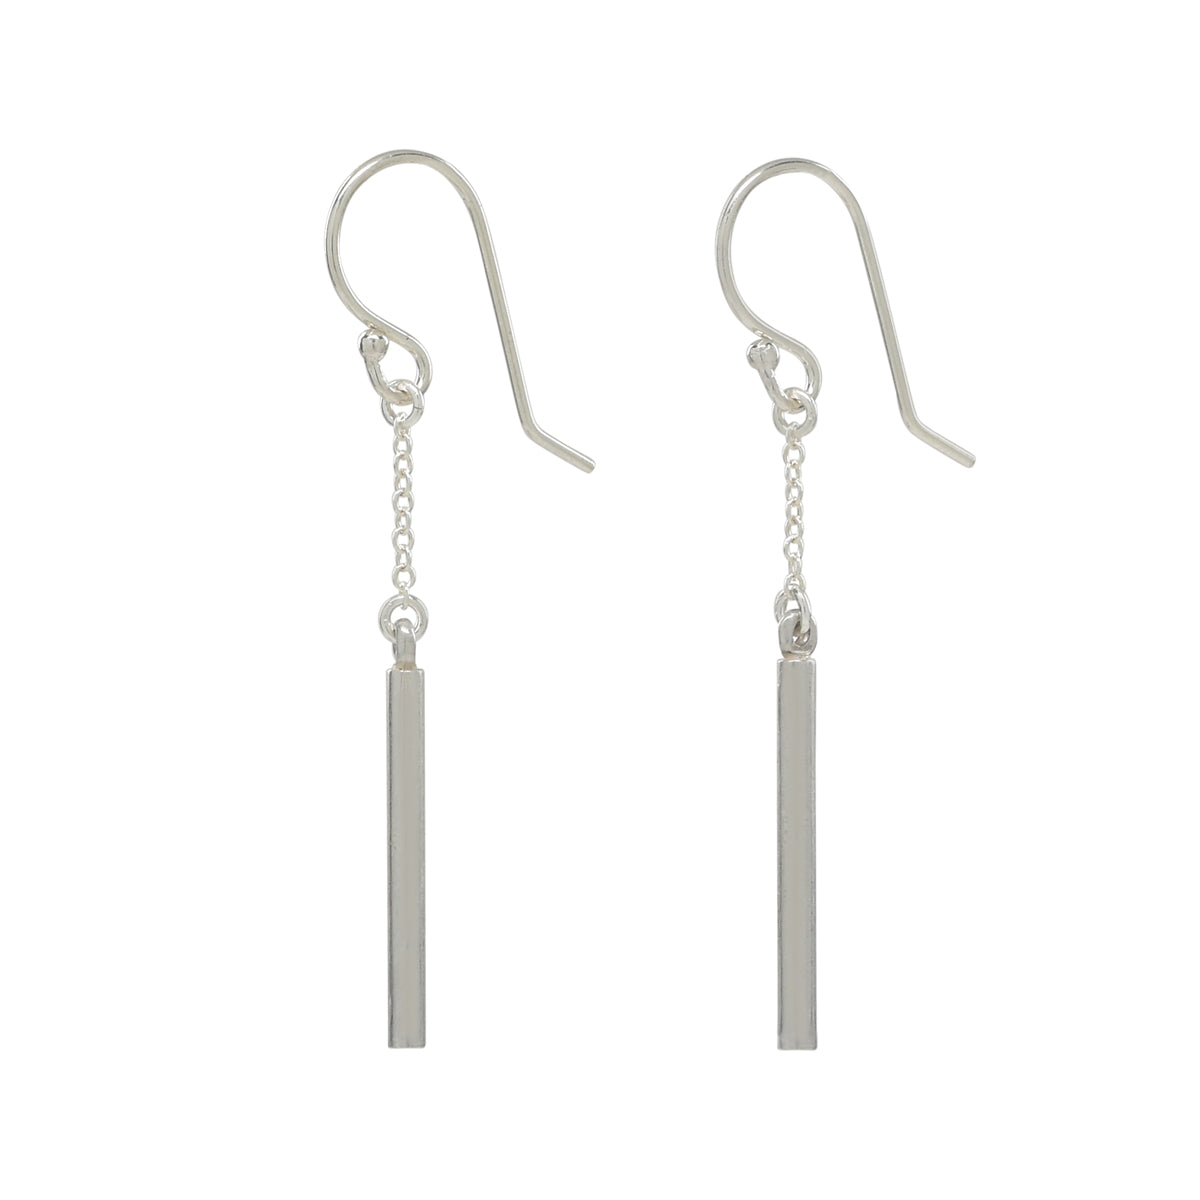 Silver Bar and Chain Earrings